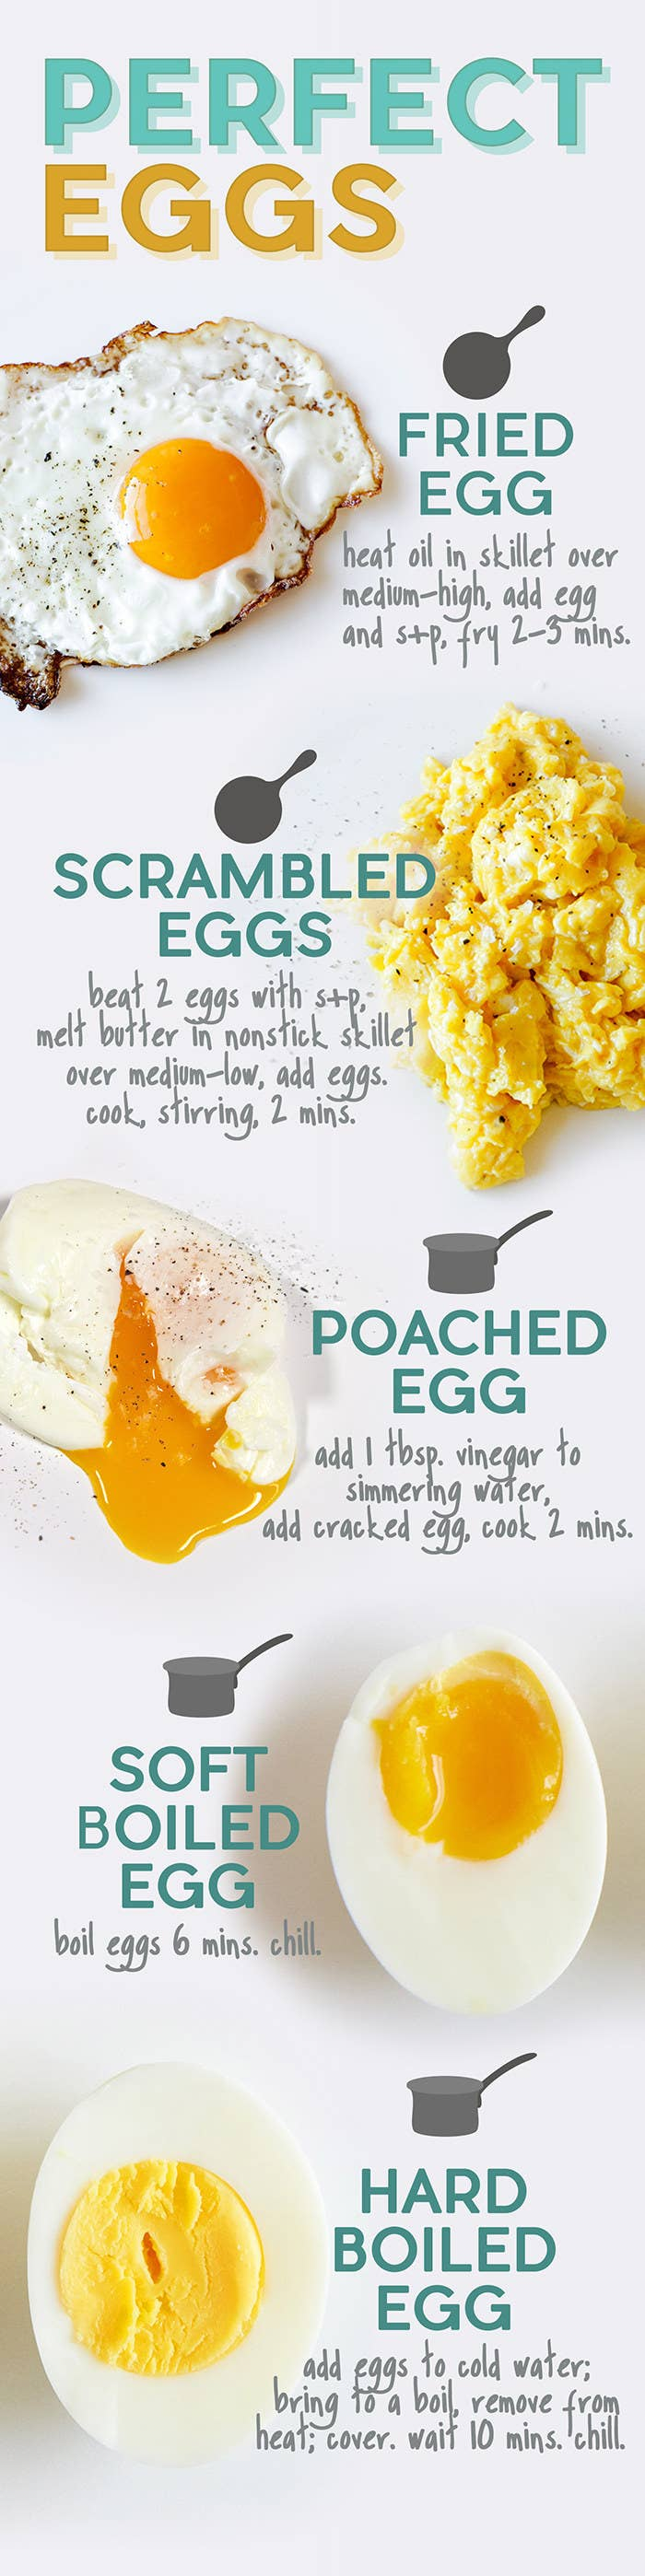 How to perfectly hard boil and soft boil your eggs for more tips on how to perfectly cook every type of egg head here ccuart Image collections